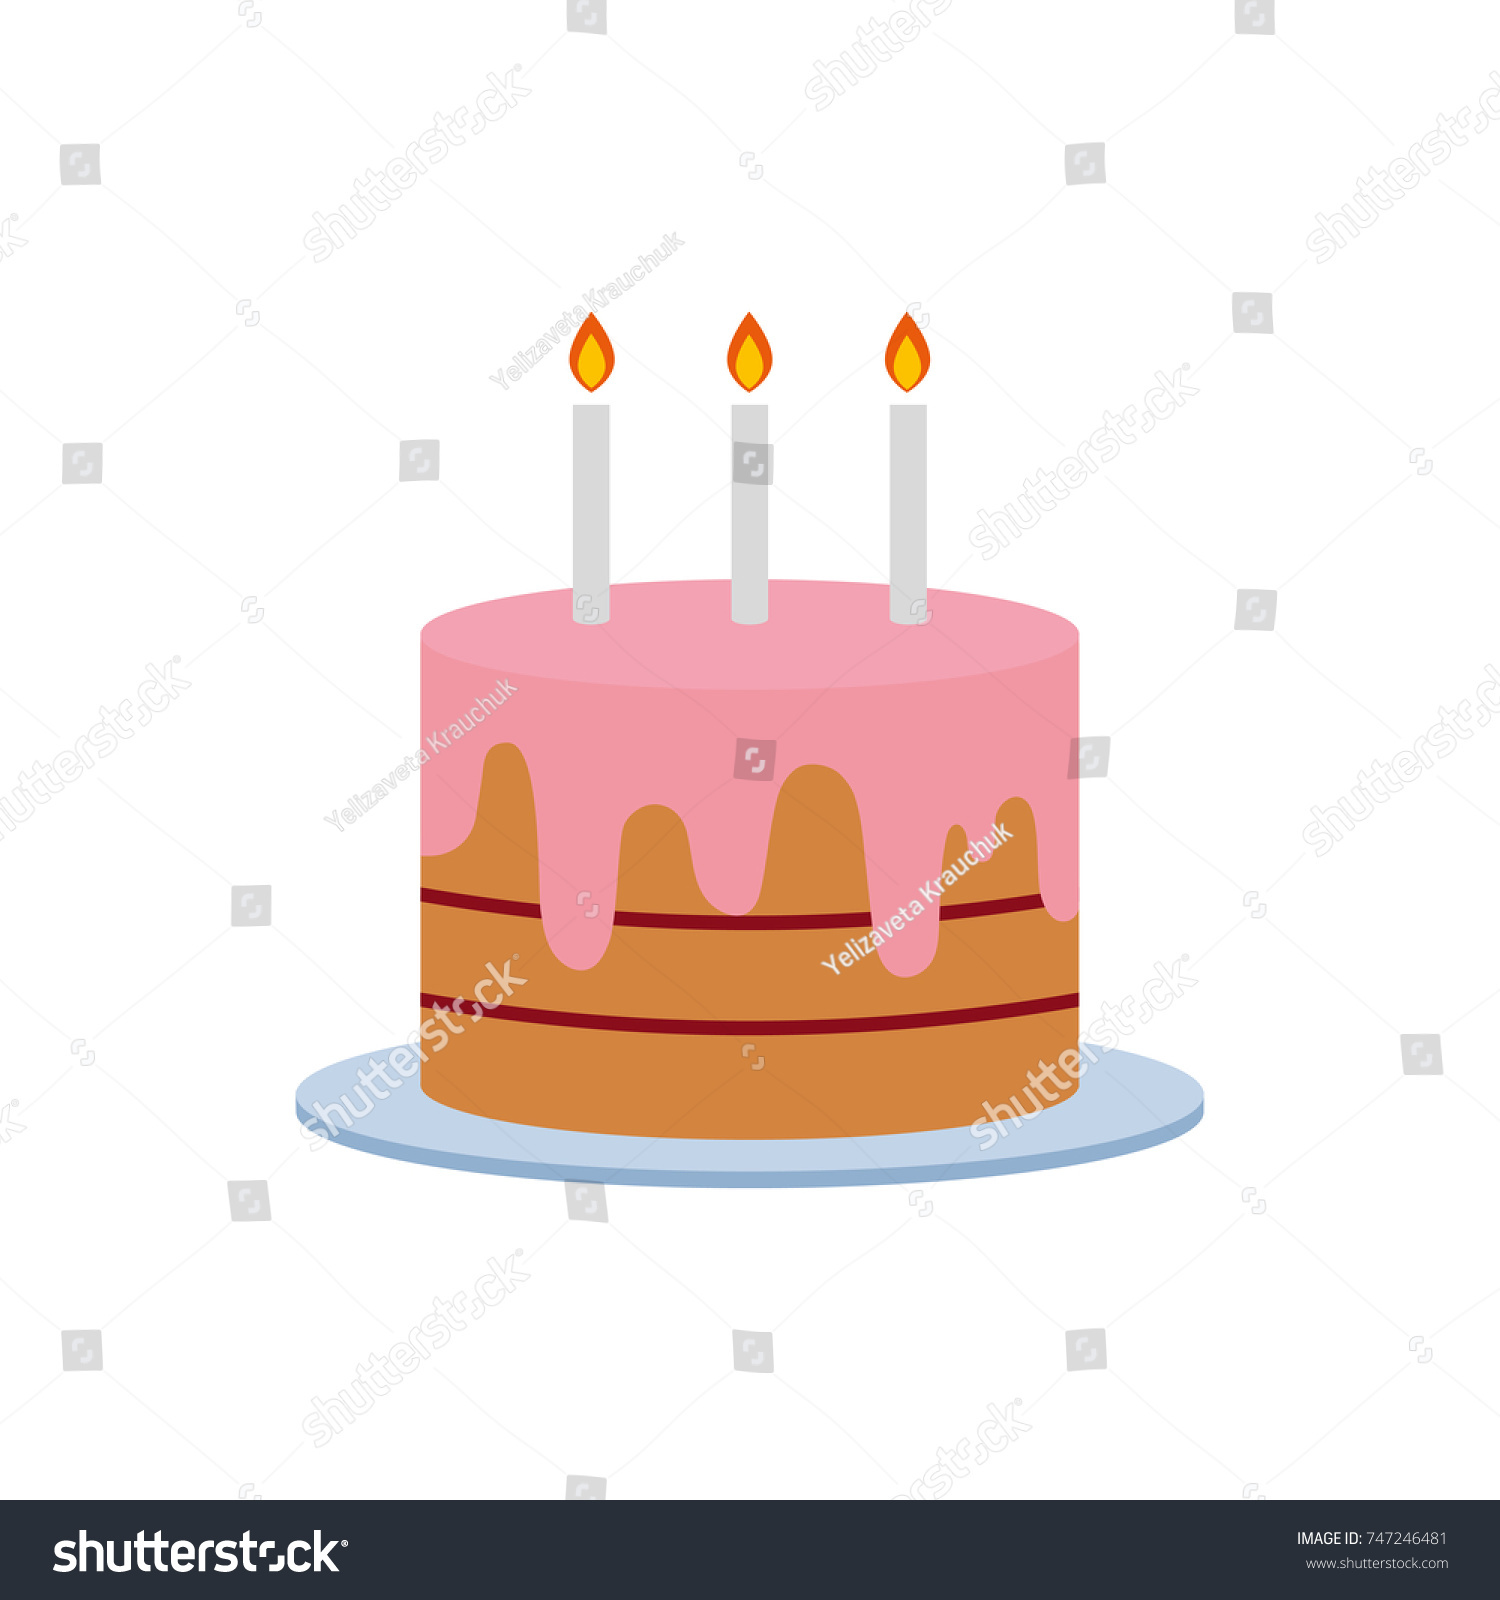 Birthday Cake Vector Illustration With Candles On White Background Art Logo Design